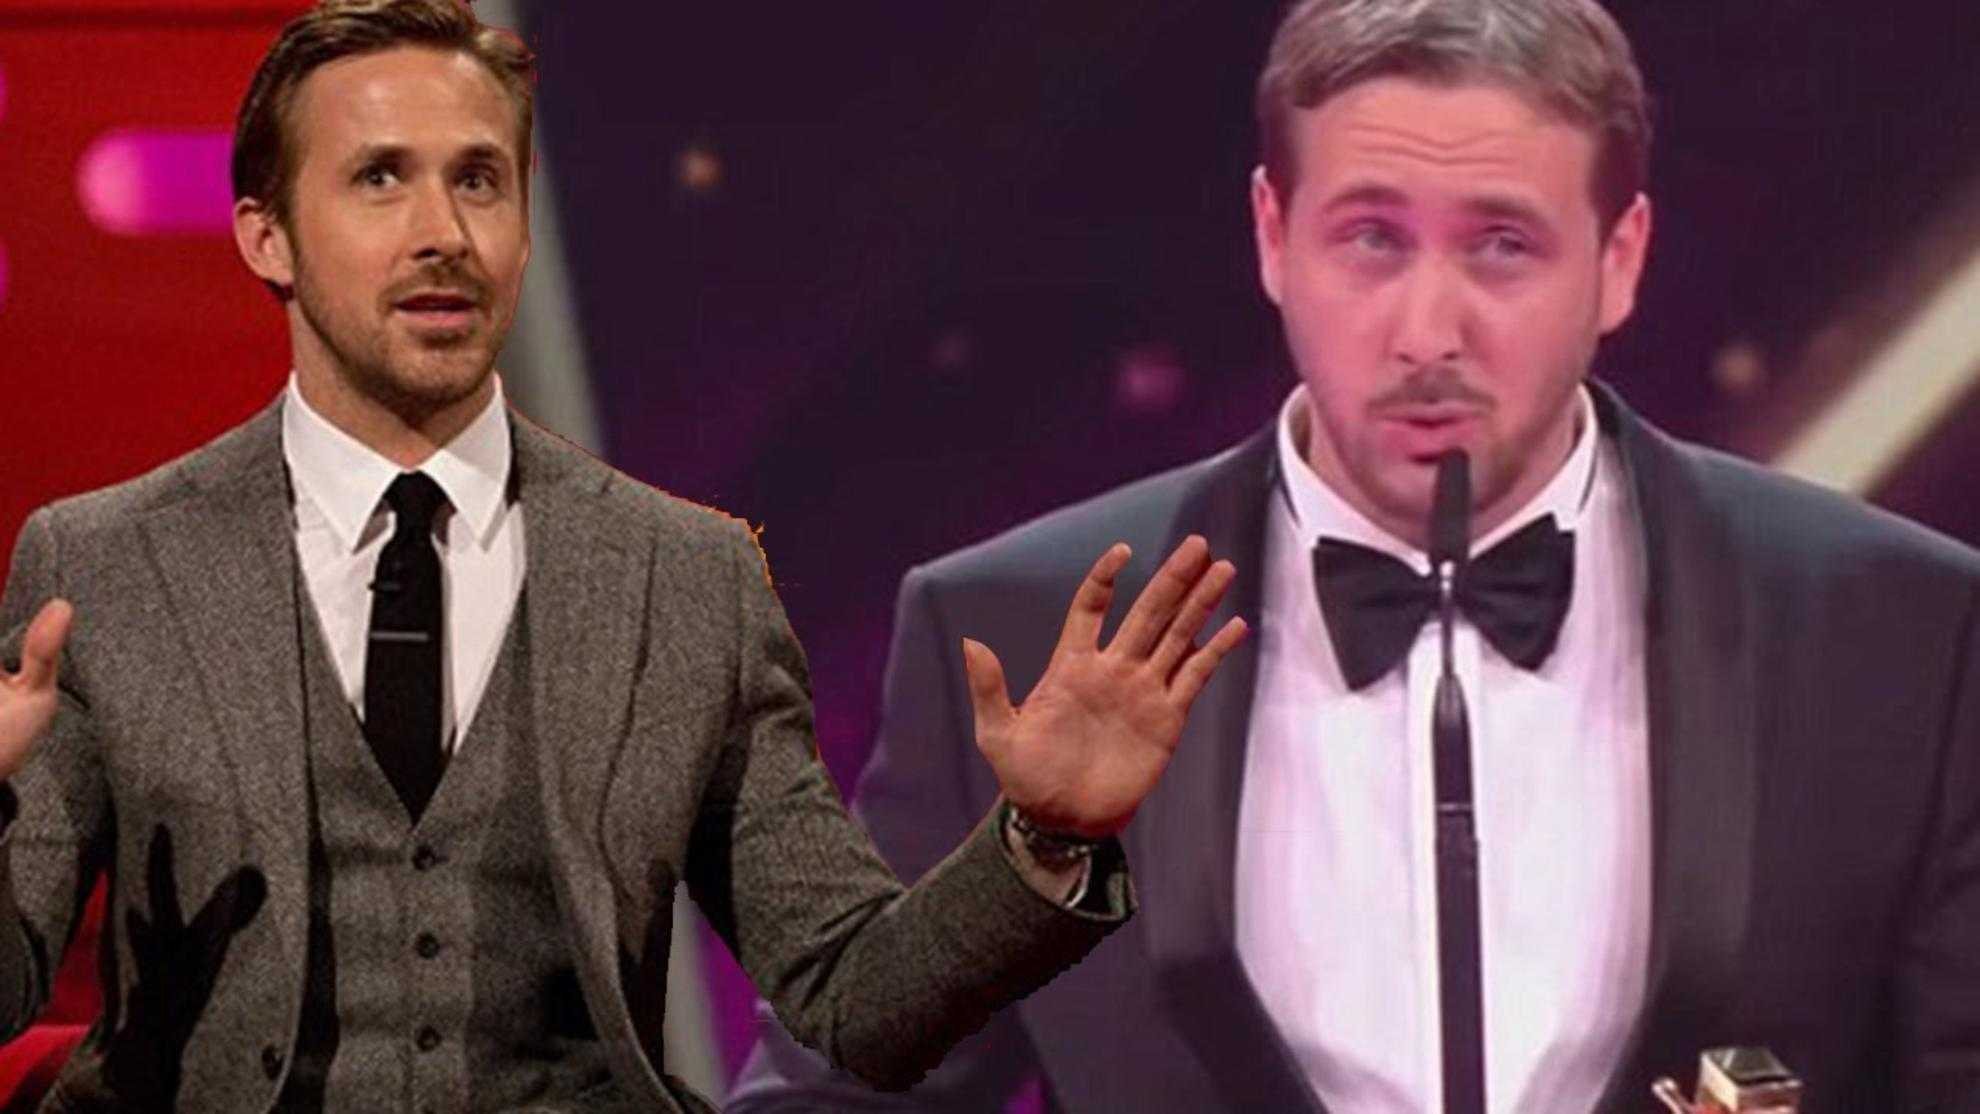 Ryan Gosling double